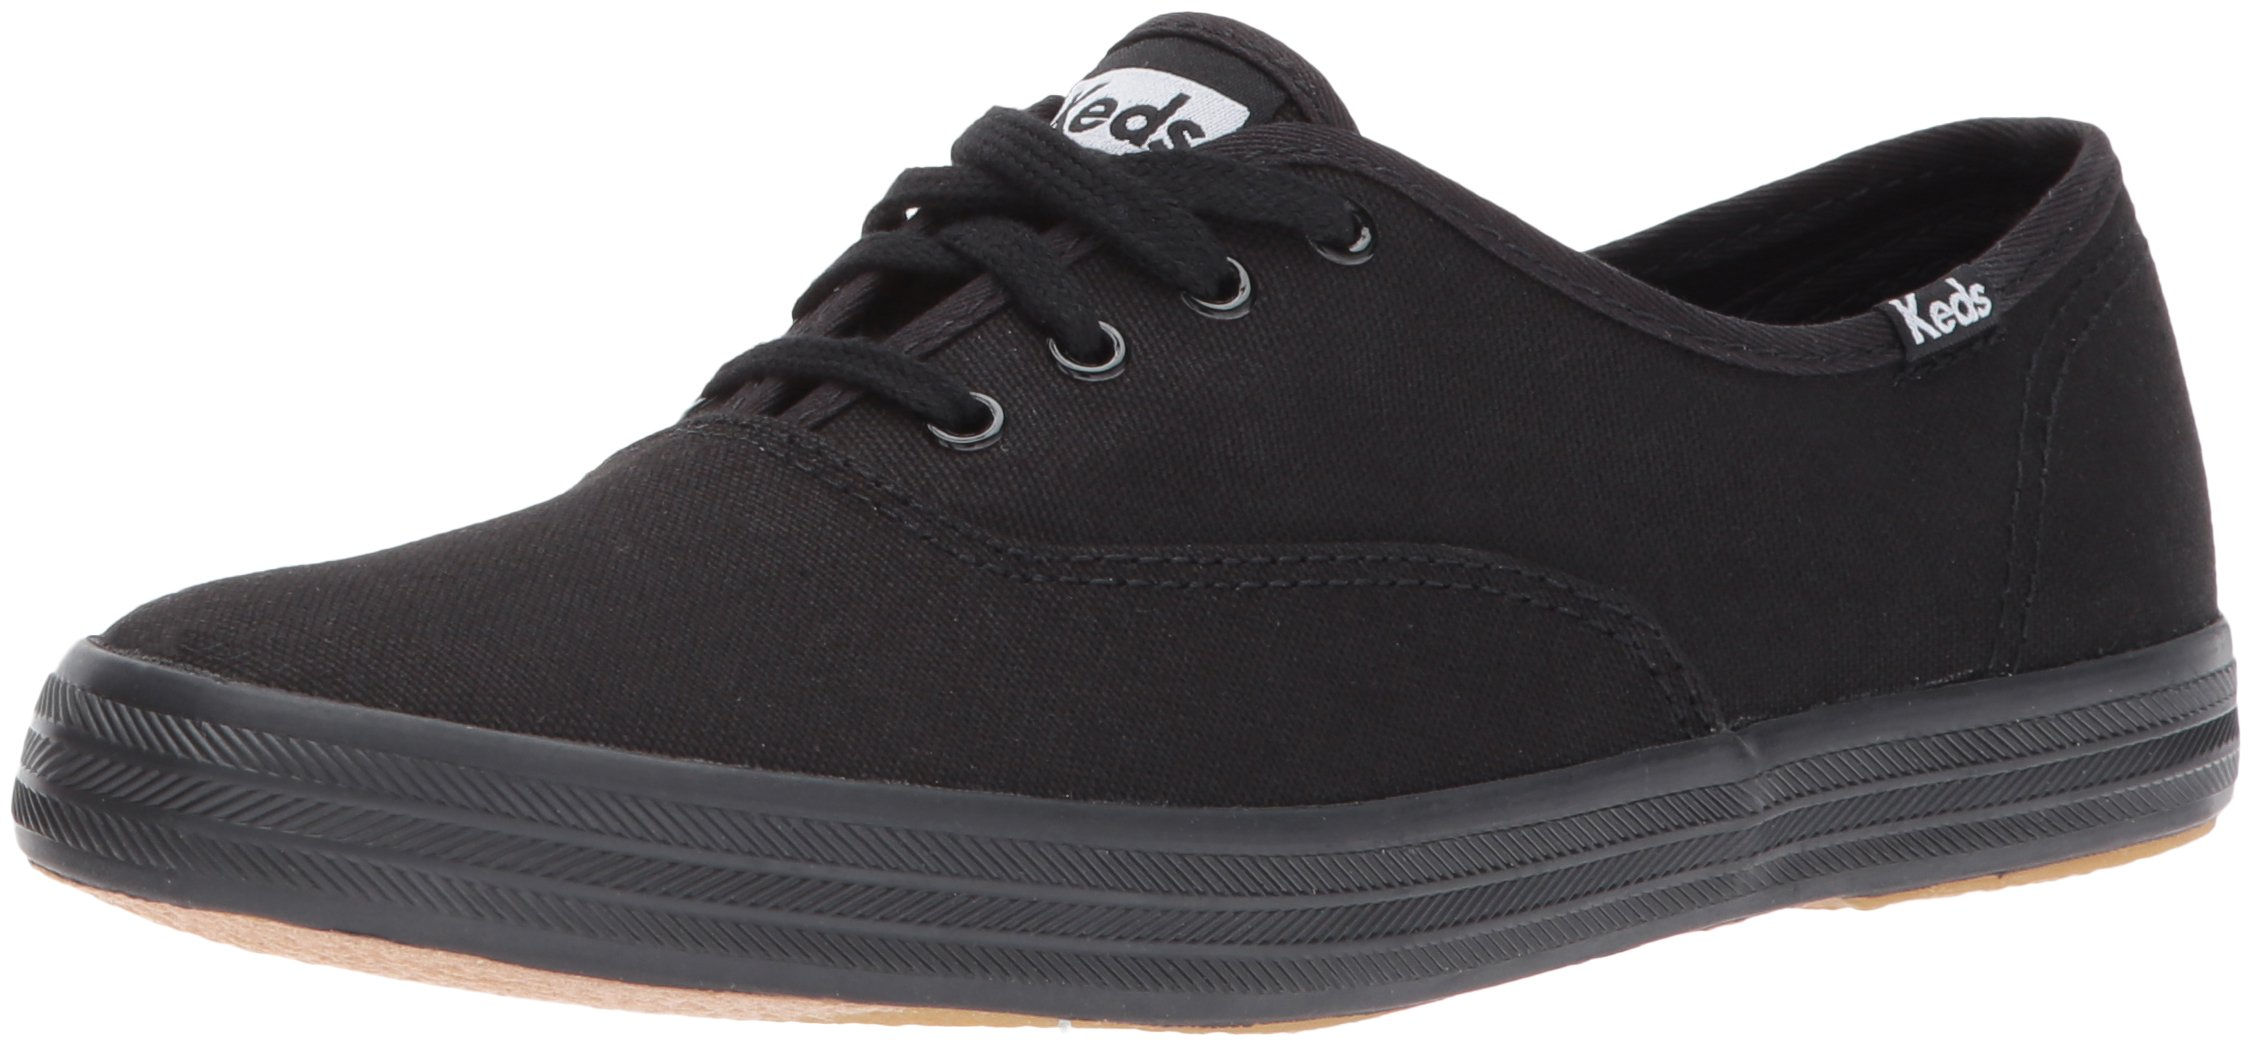 Keds Women's Champion Original Canvas Sneaker,Black/Black,8.5 M US